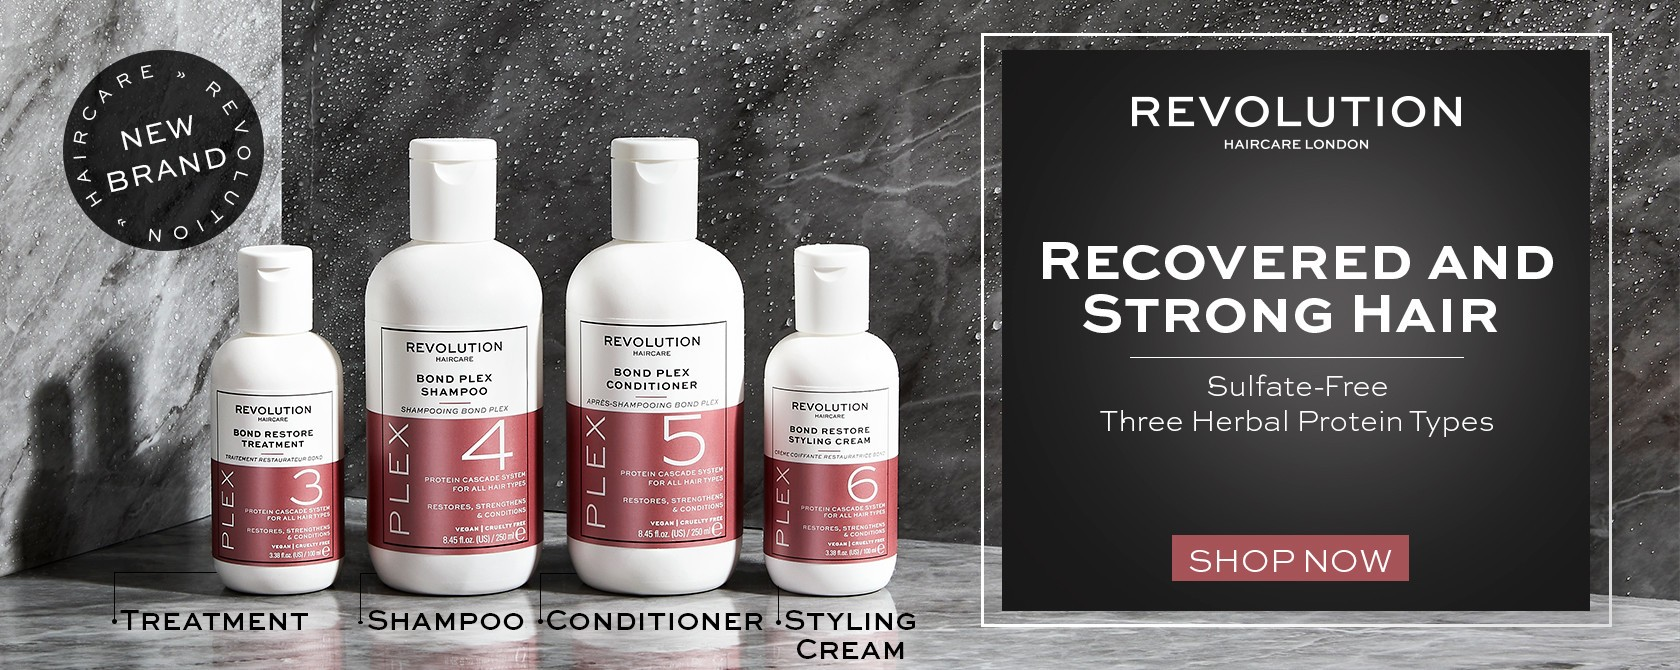 Revolution Haircare Plex Bond